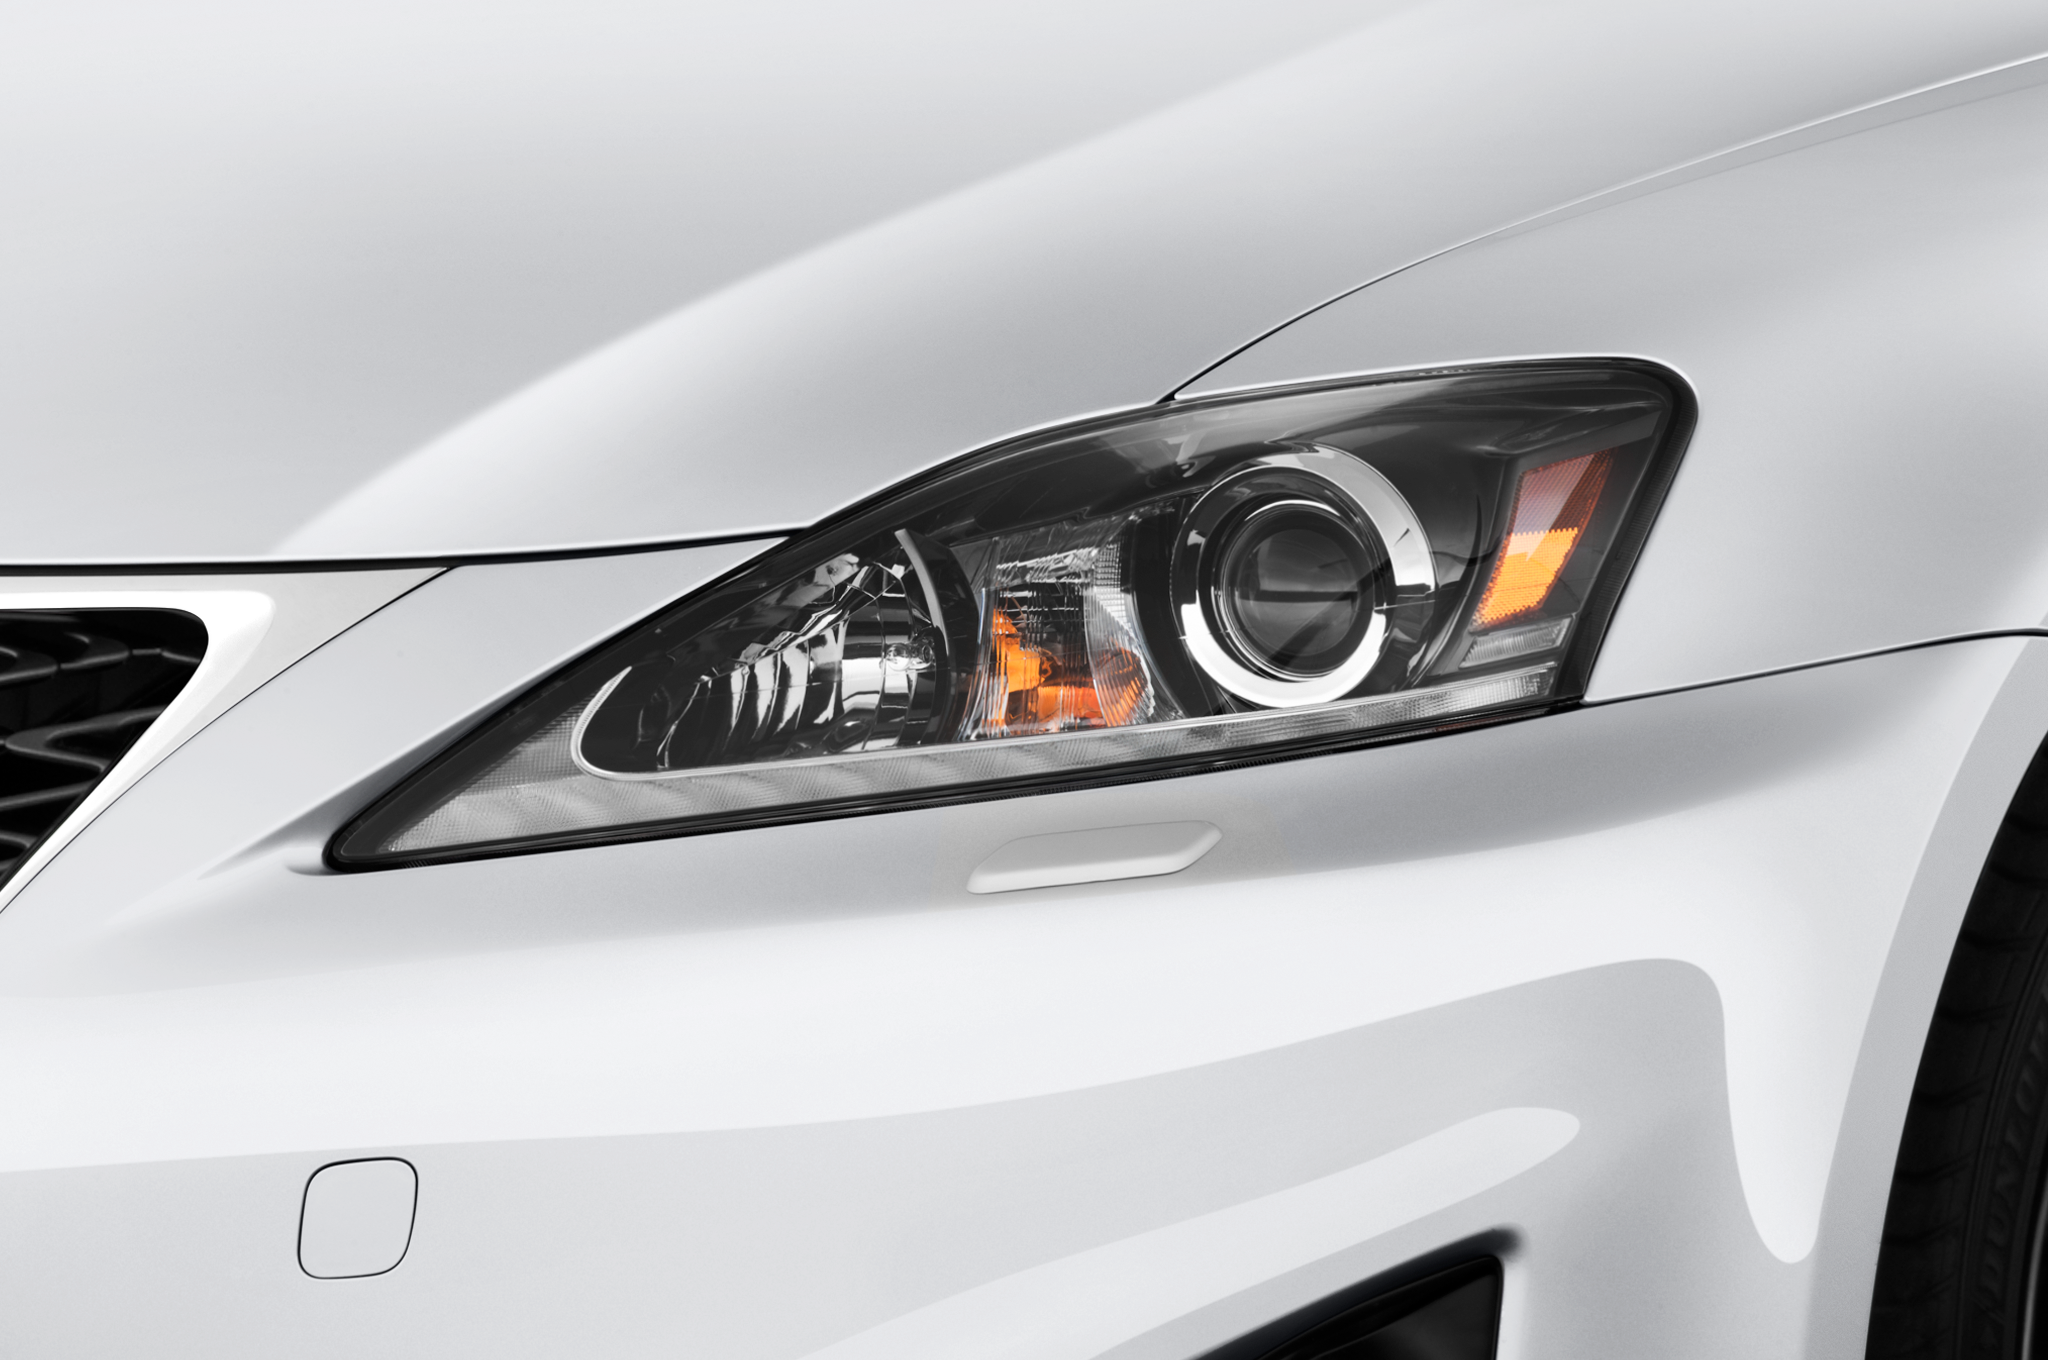 http://st.automobilemag.com/uploads/sites/10/2015/11/2011-lexus-is-350-rwd-sedan-headlight.png